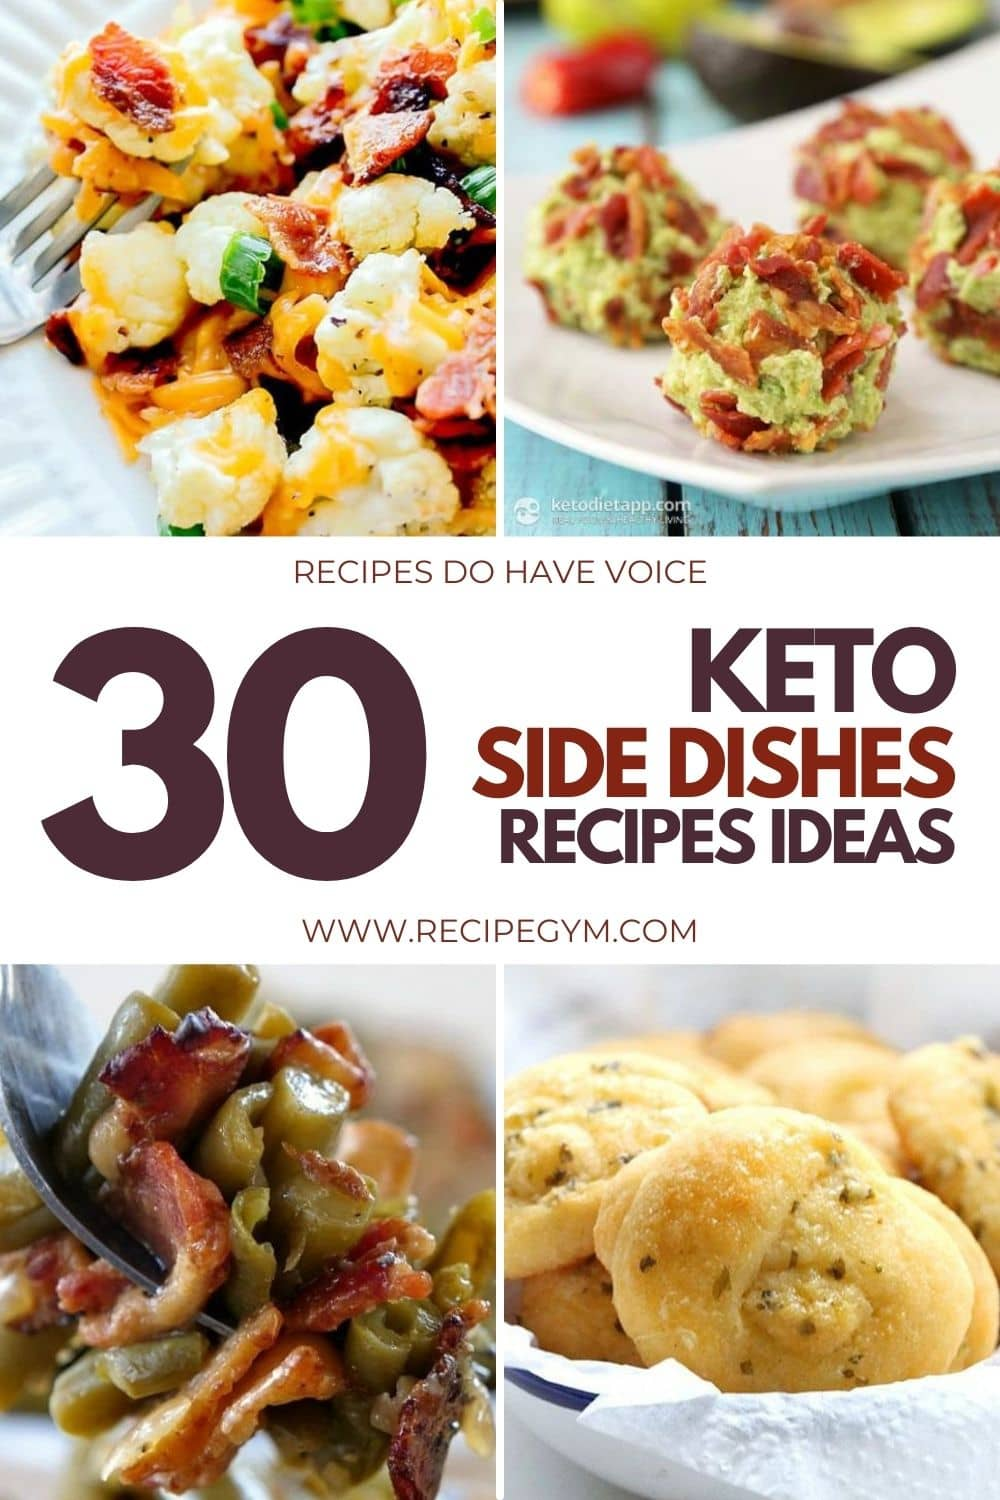 30 keto side dishes recipes